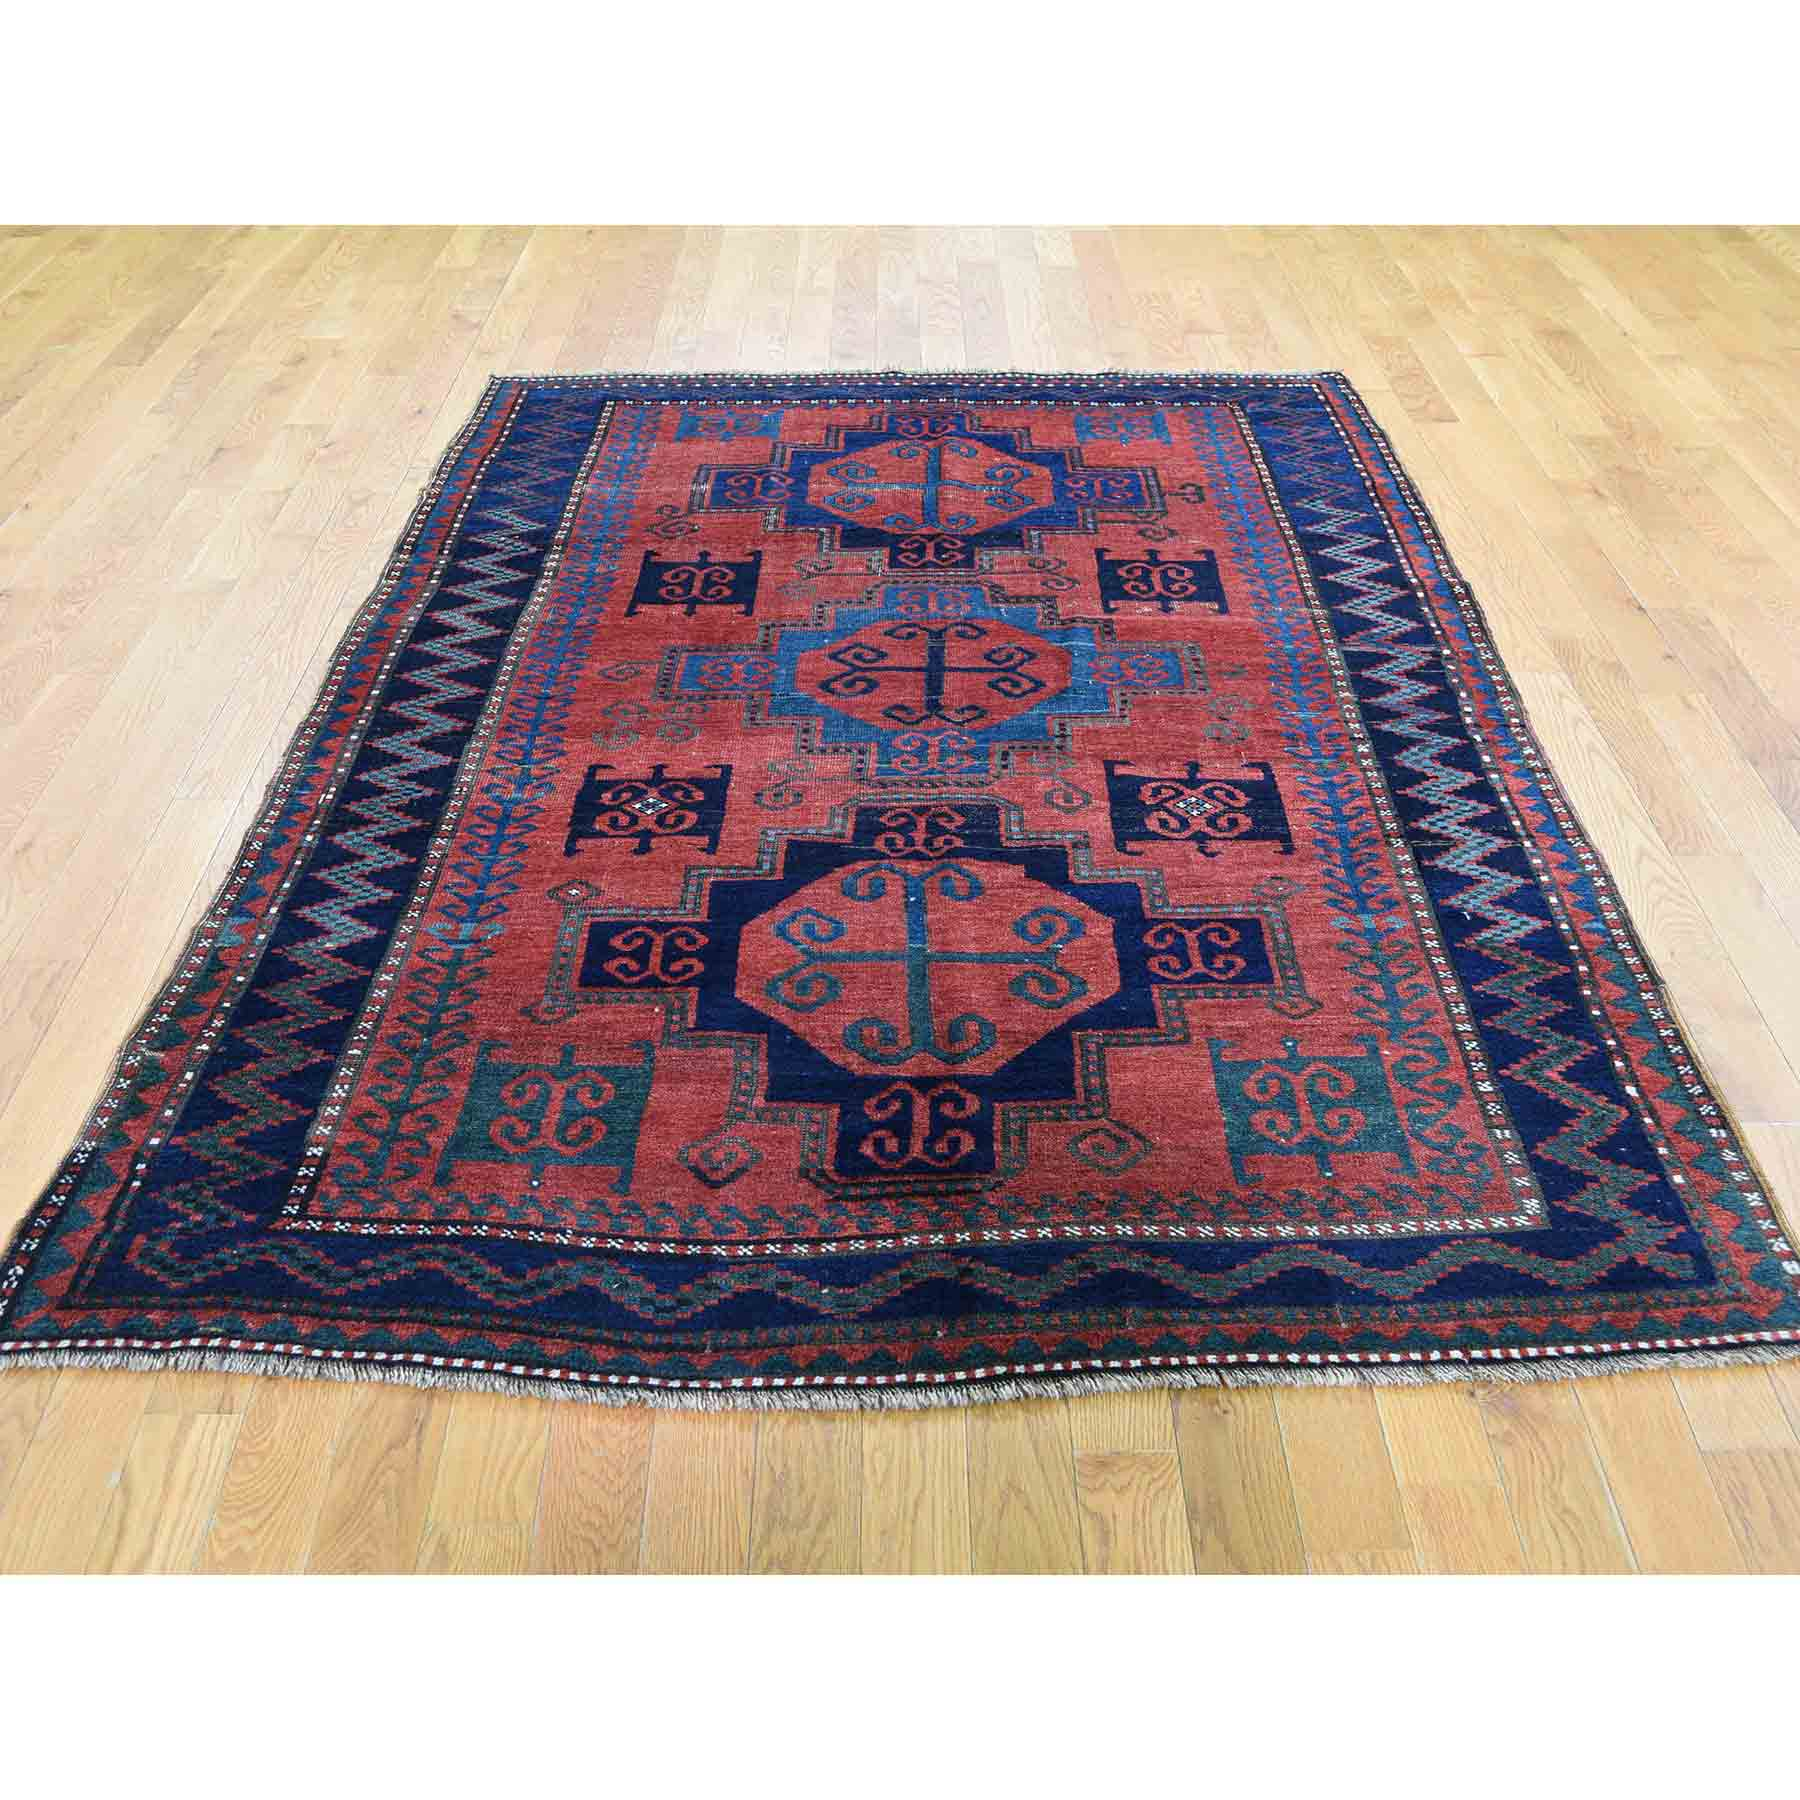 Antique-Hand-Knotted-Rug-230155